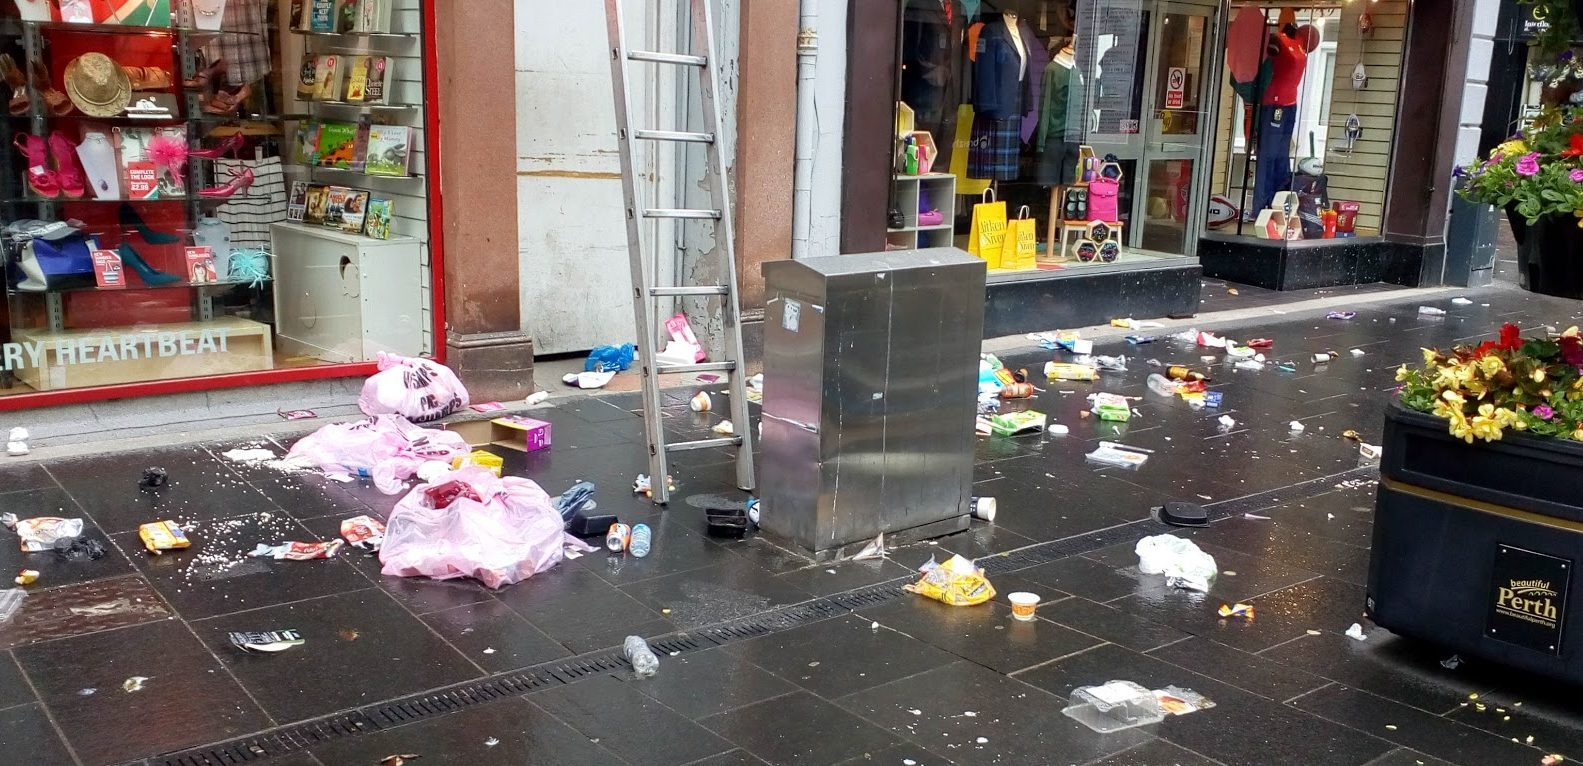 Rubbish strewn across Perth's High Street.